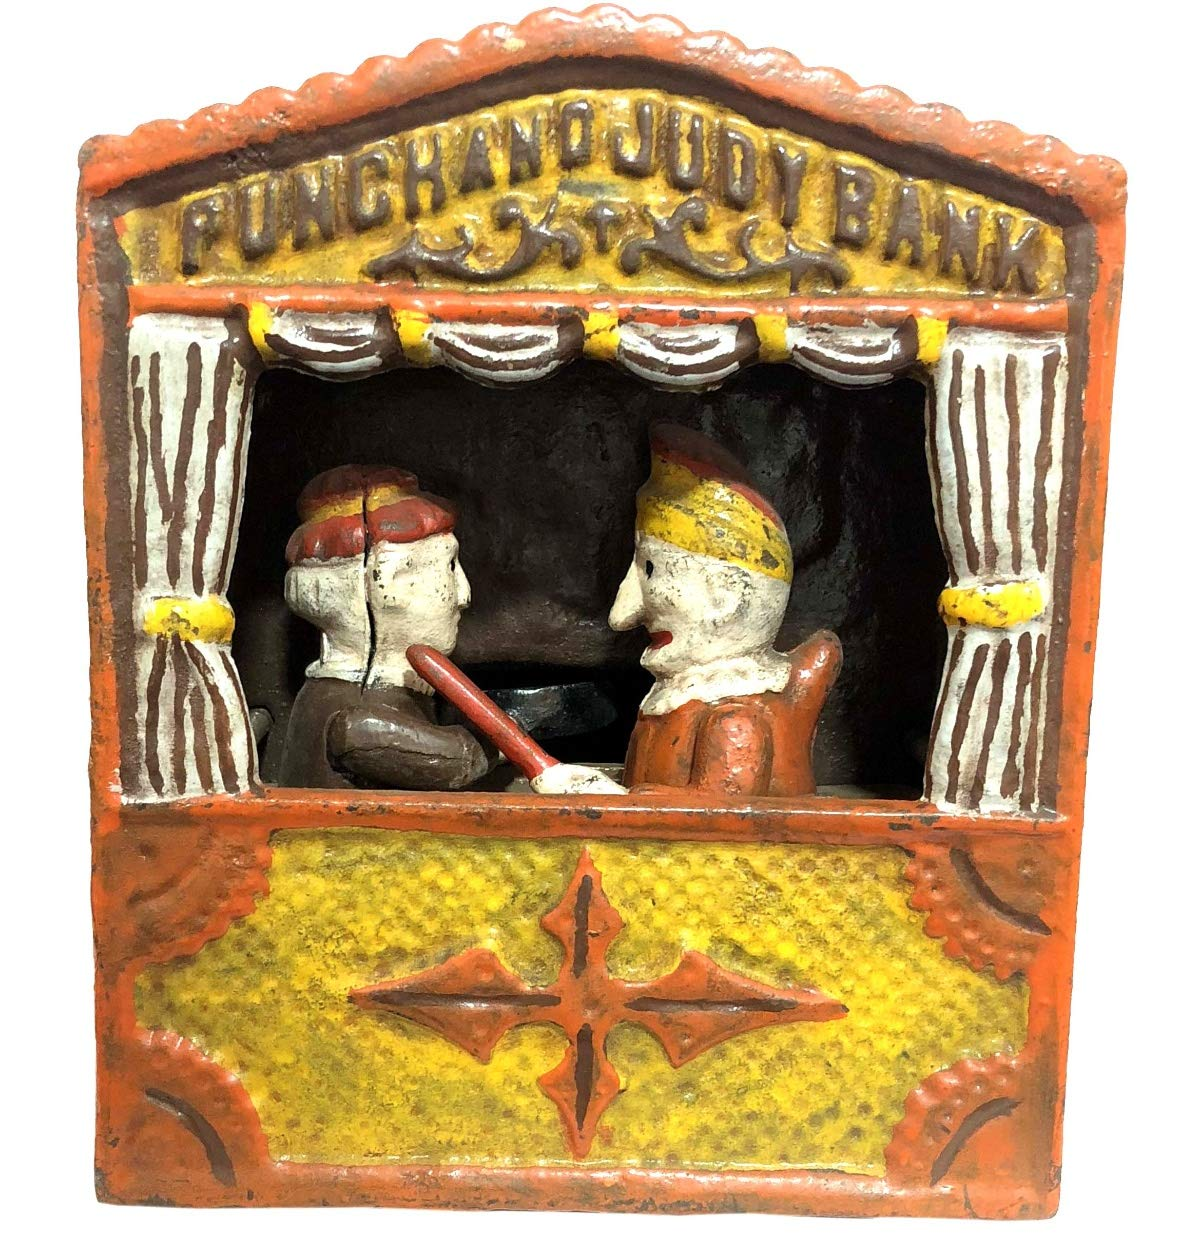 d9b2447daf Amazon.com: Antiques World Antique Vintage Style Collectible Artistic Heavy  Iron Cast Punch & Judy Unique Mechanical Money Bank / Money Box / Coin Box  ...